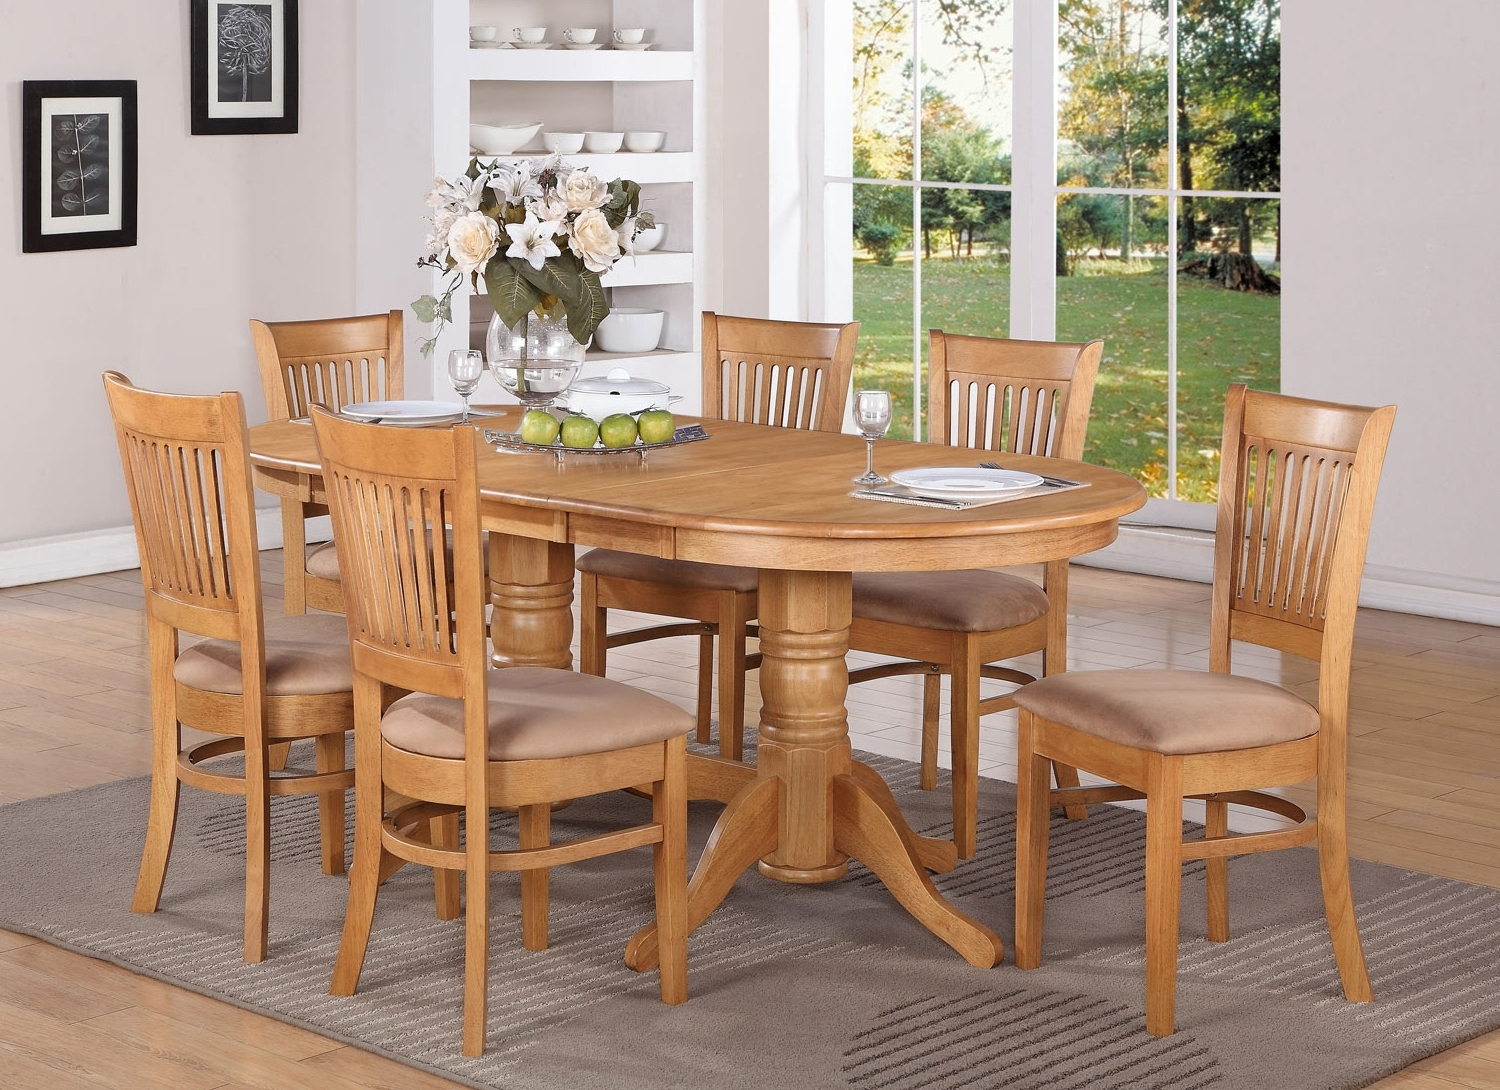 Vancouver 7Pc Oval Dinette Dining Table 6 Microfiber Chairs,oak Finish For Most Up To Date Oak Dining Tables And Chairs (View 23 of 25)